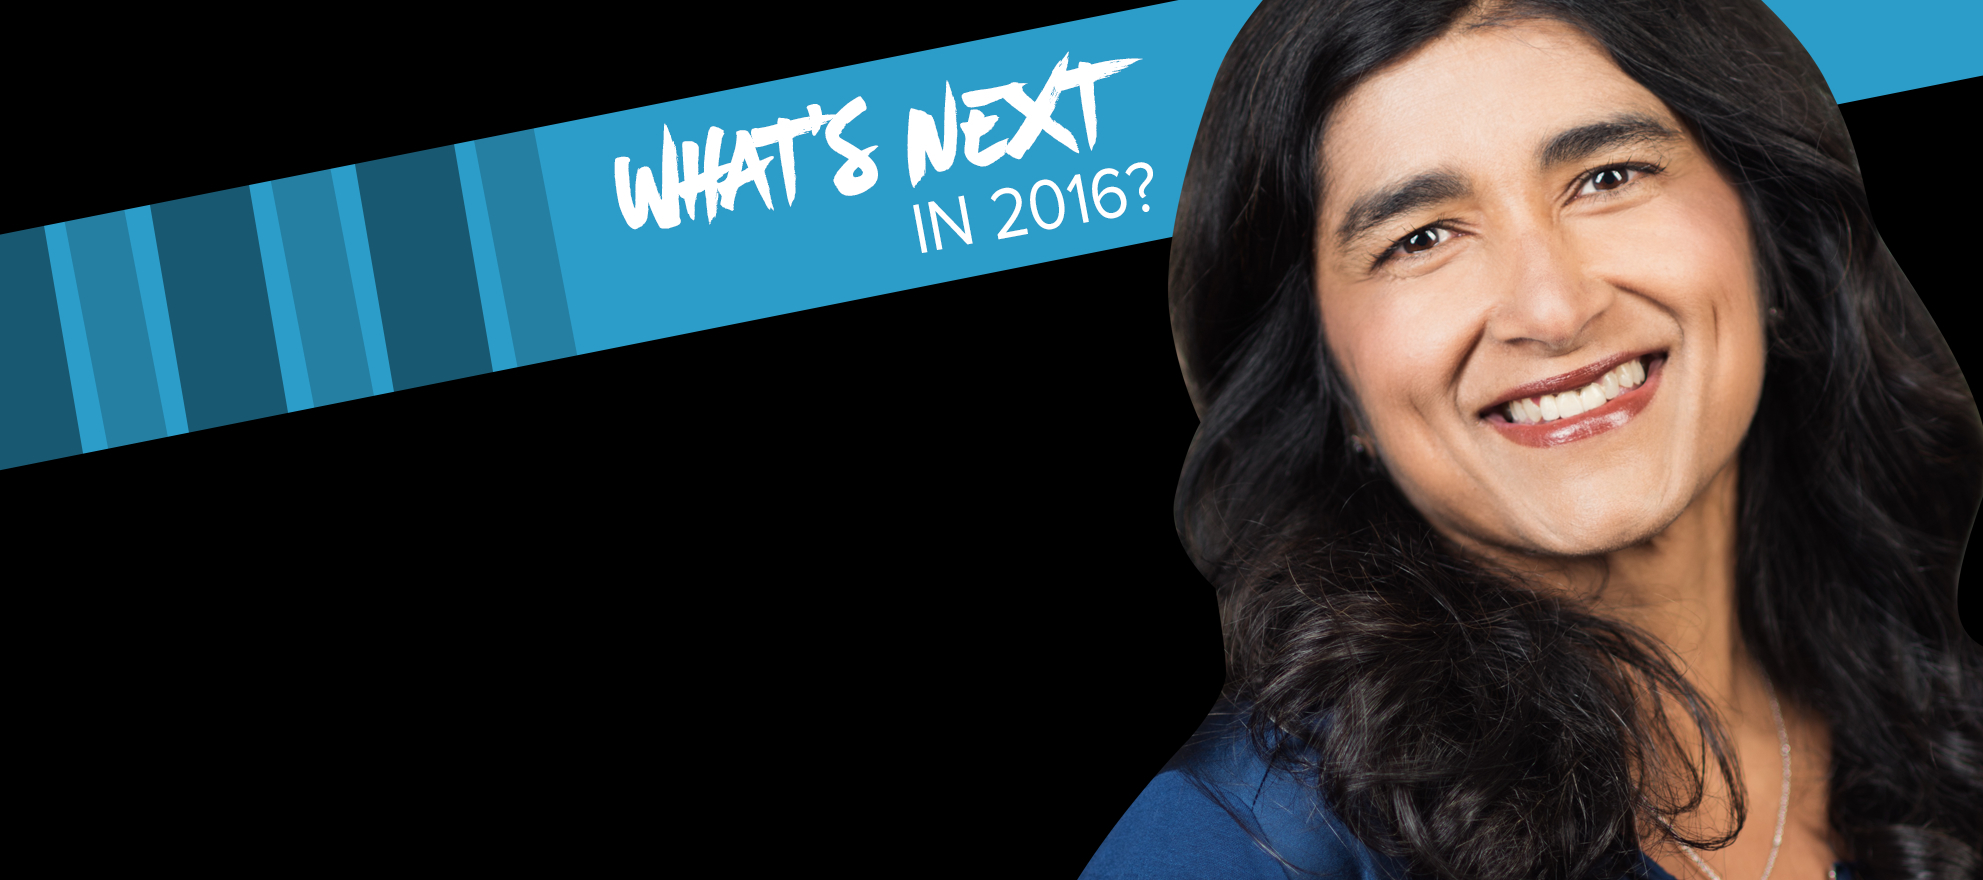 Sarita Dua on what's next in 2016